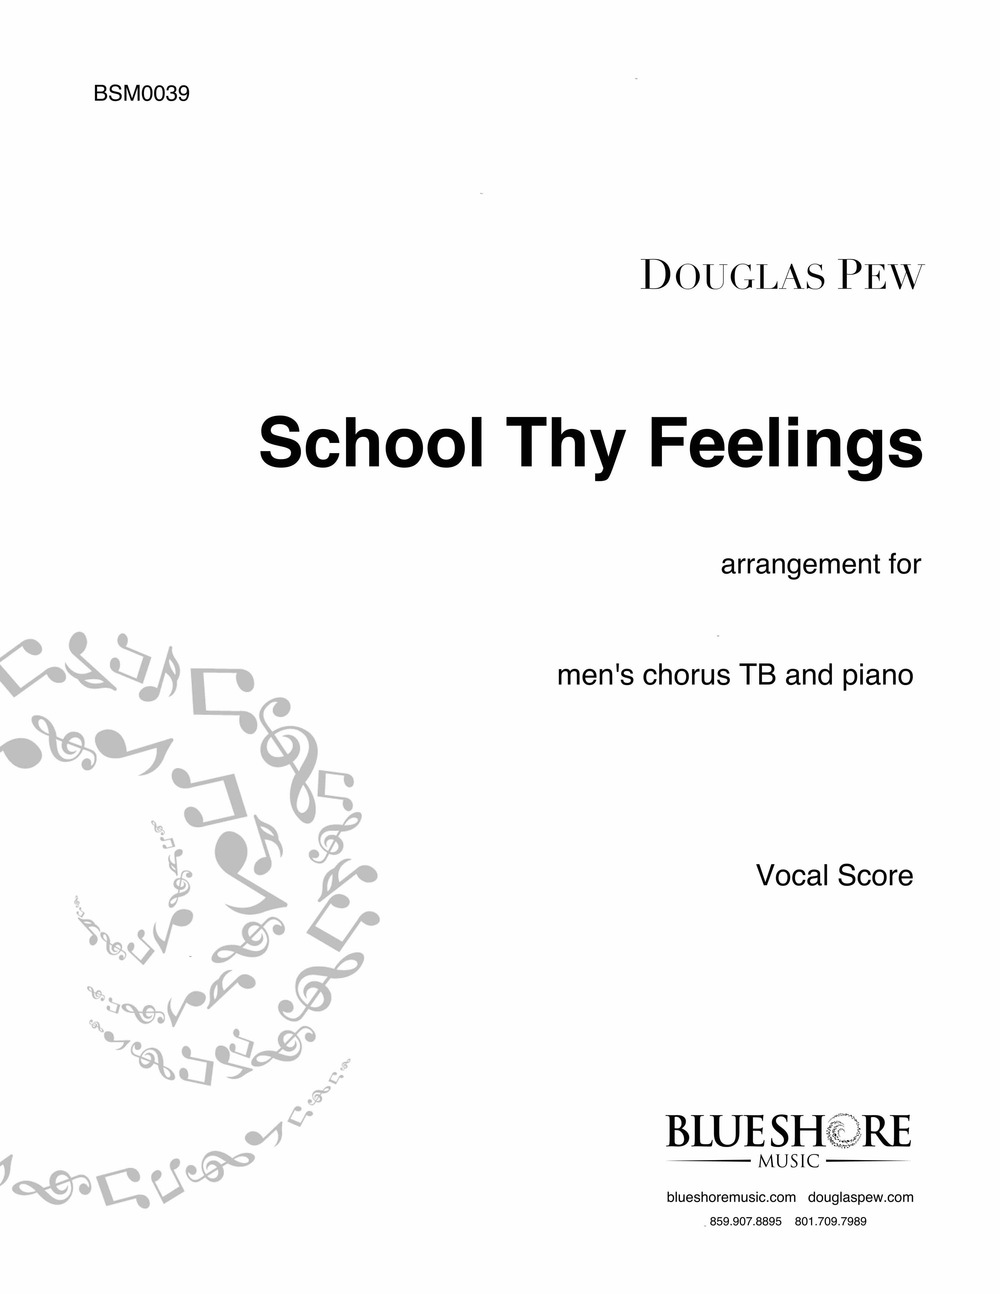 School Thy Feelings - Hymn arr. for TB and Piano